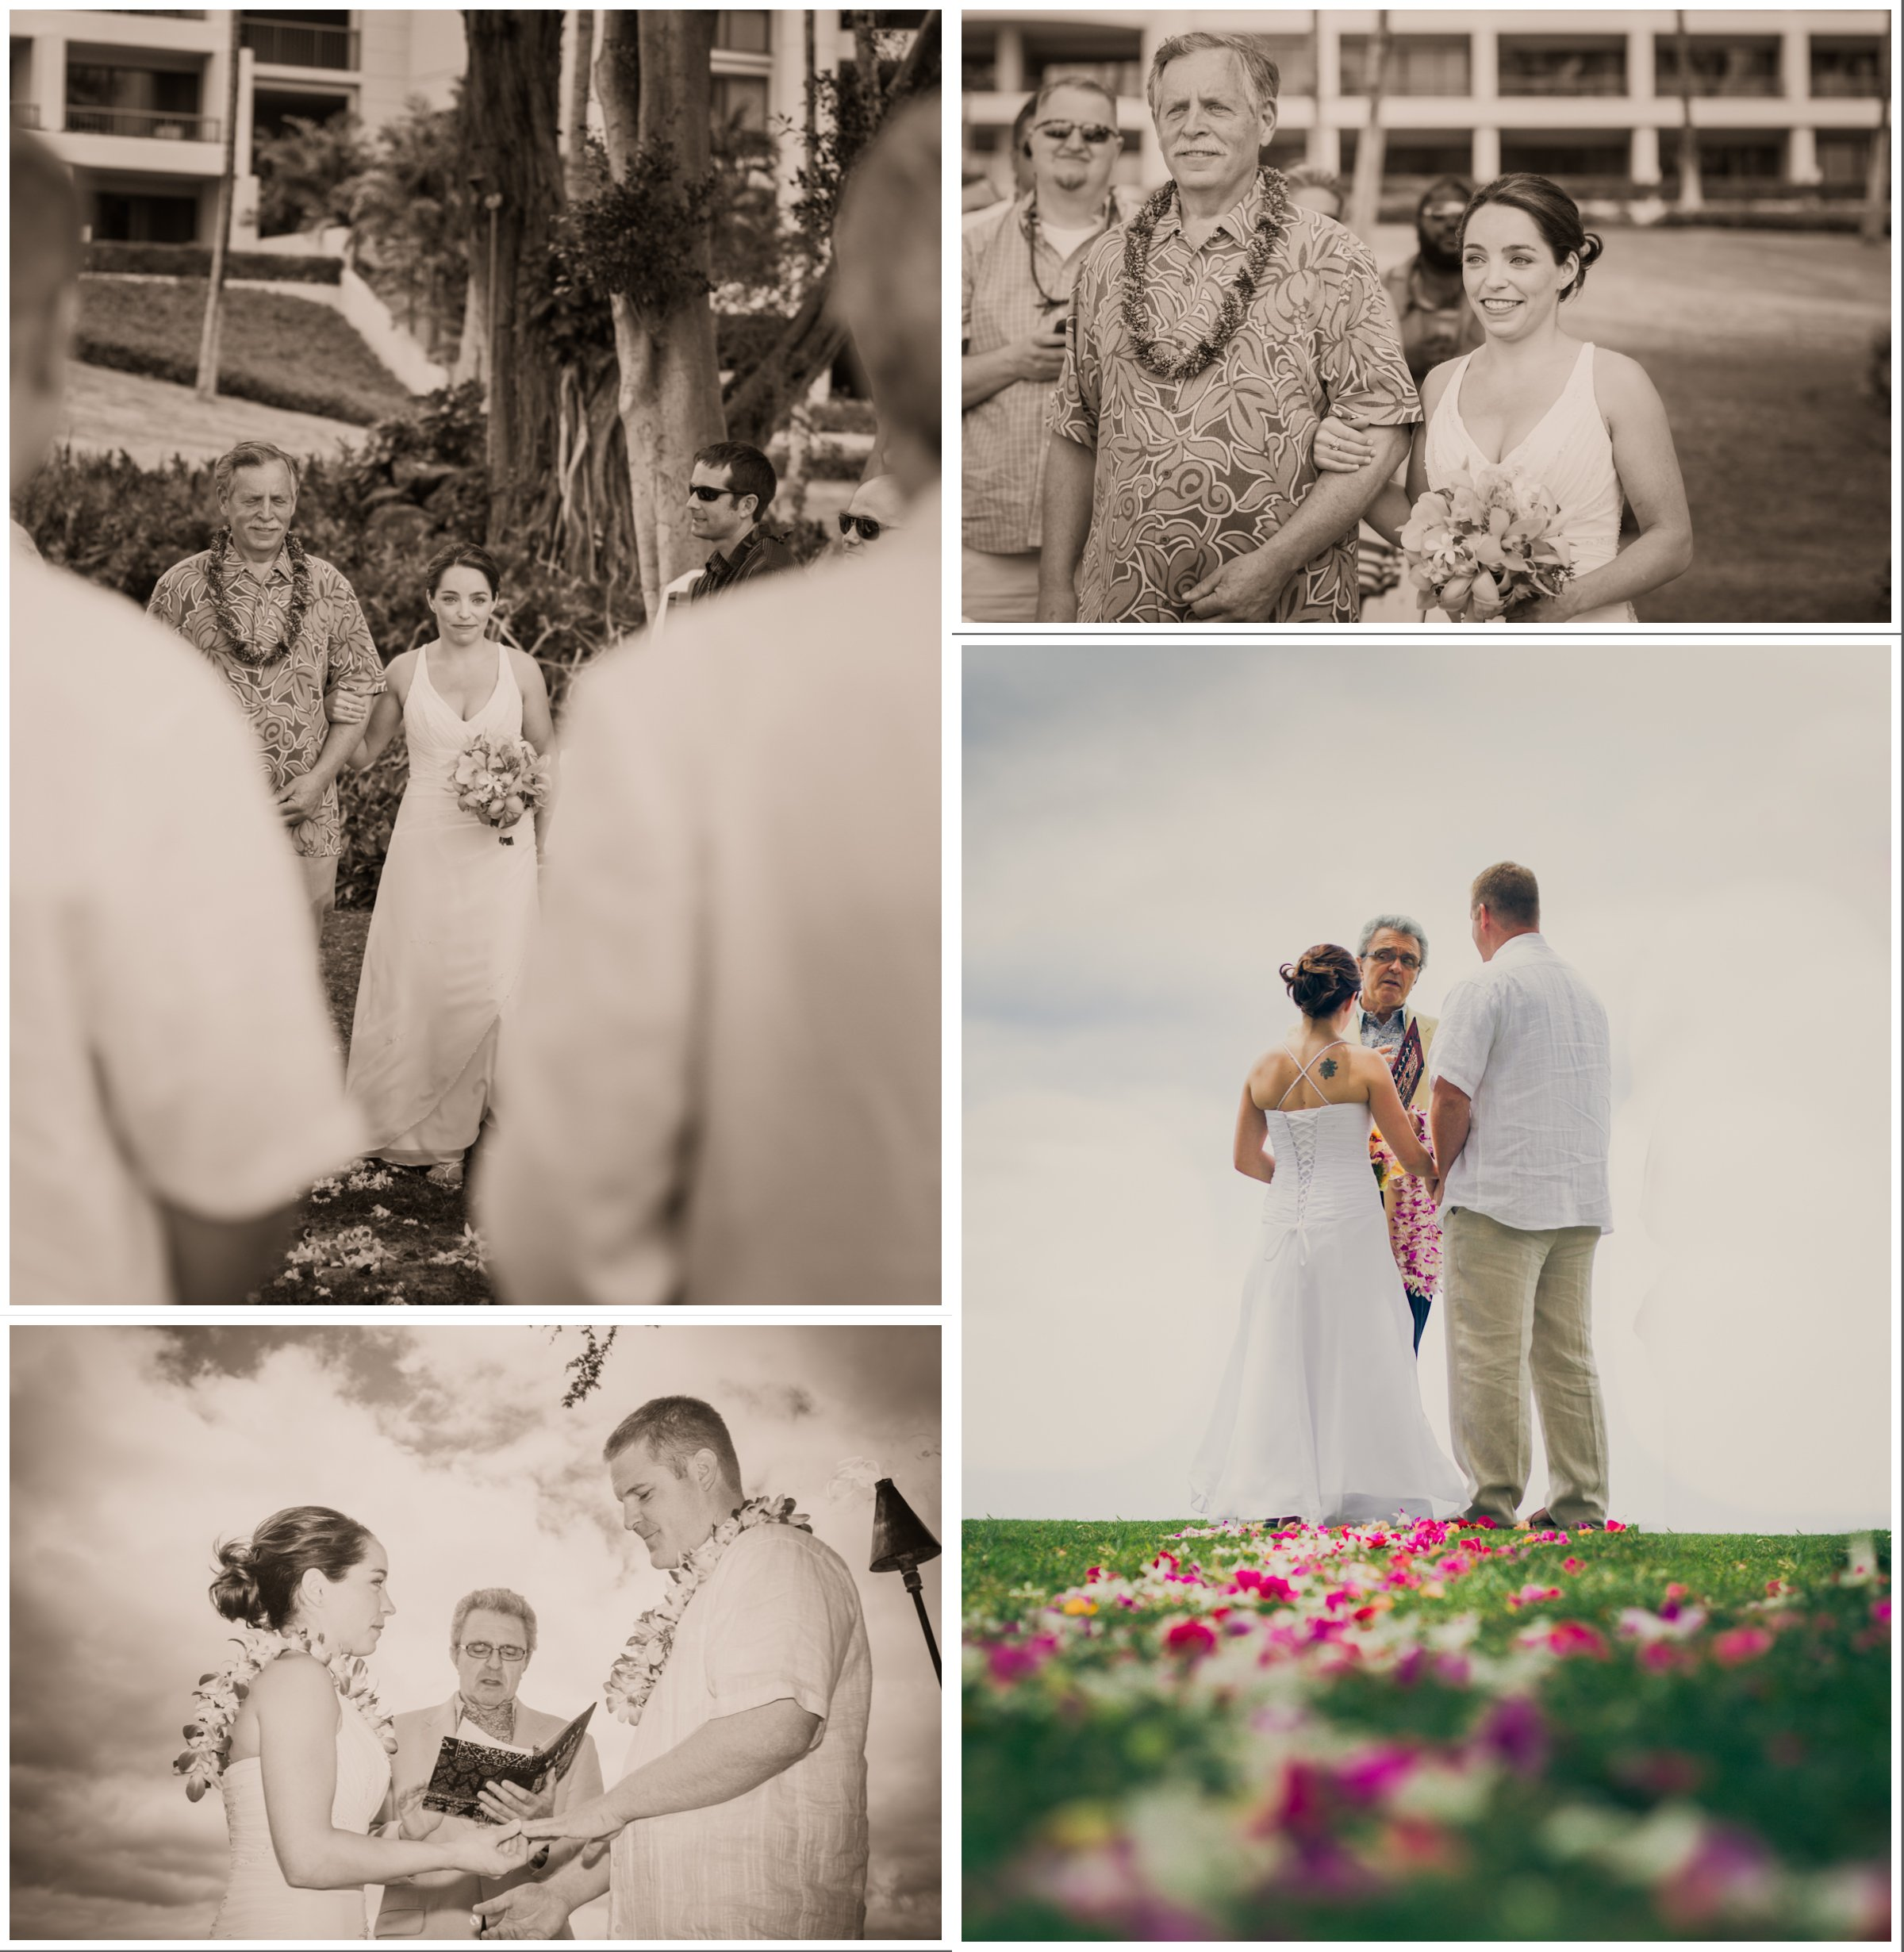 Hapuna Beach Wedding on the Big Island of Hawaii